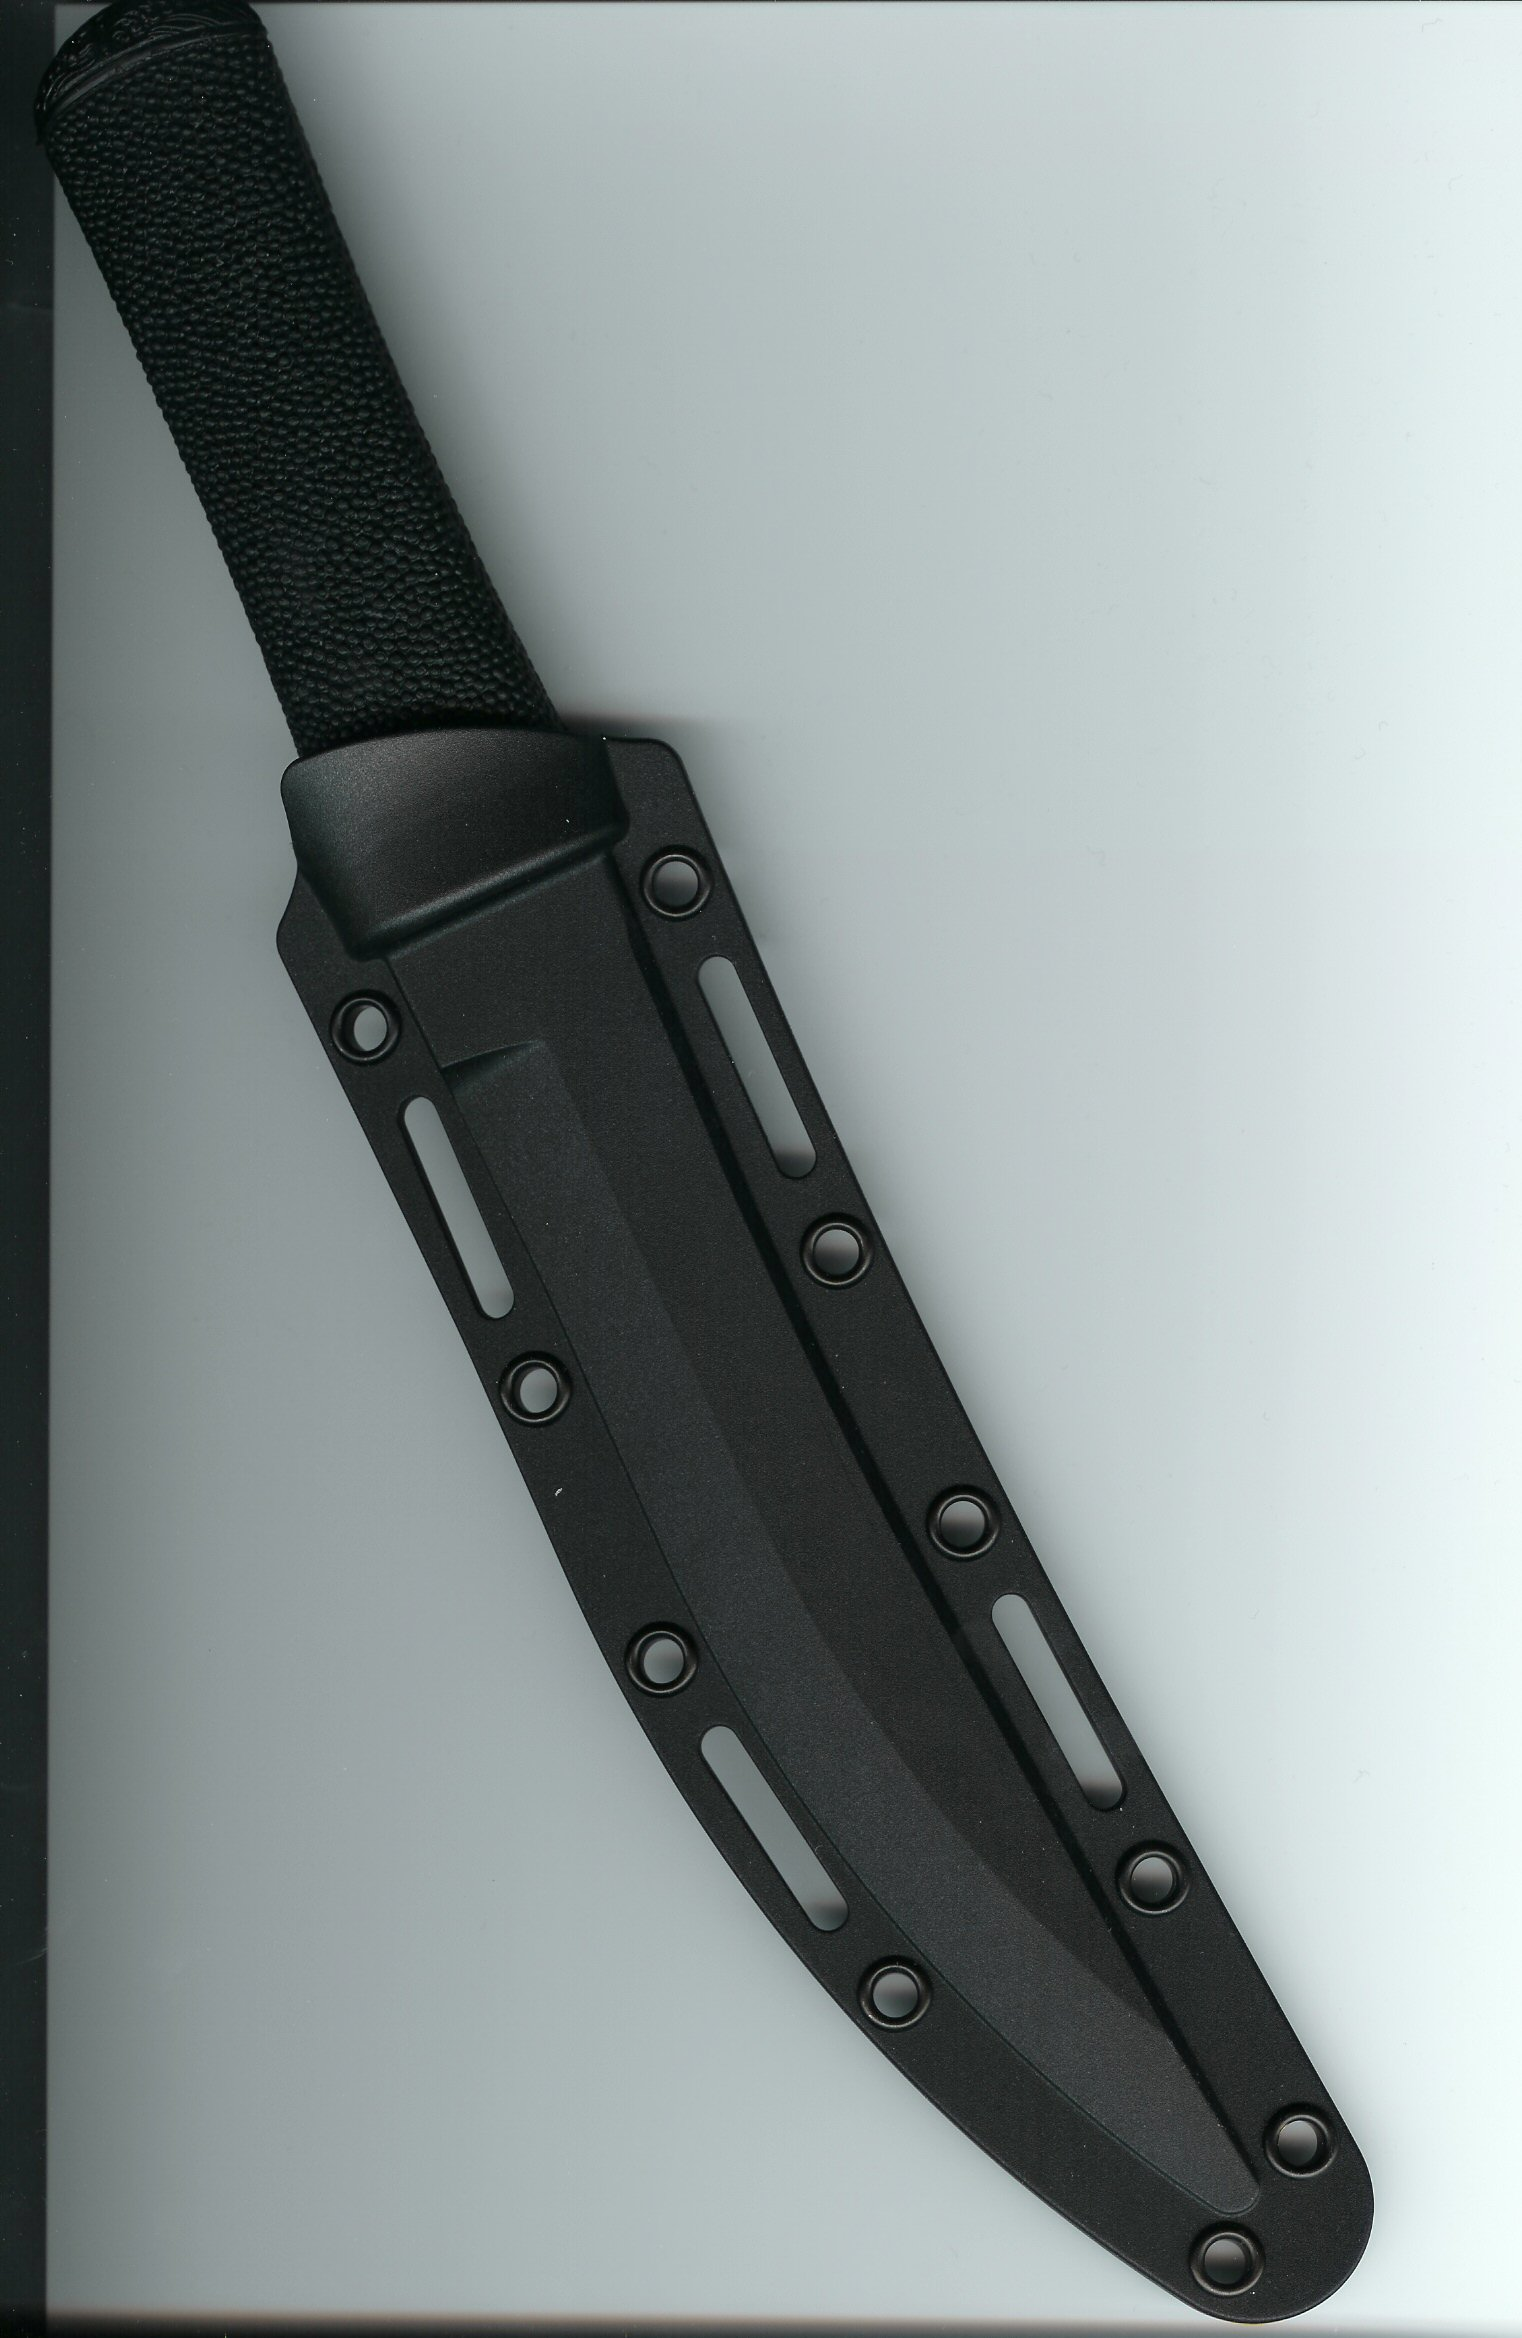 Hissatsu%20in%20Scabbard 1 <!  :en  >Hissatsu Combat/Tactical Tanto Knife: A Japanese Style Solution for Modern Spec Ops/Tactical CQB Problems.<!  :  >